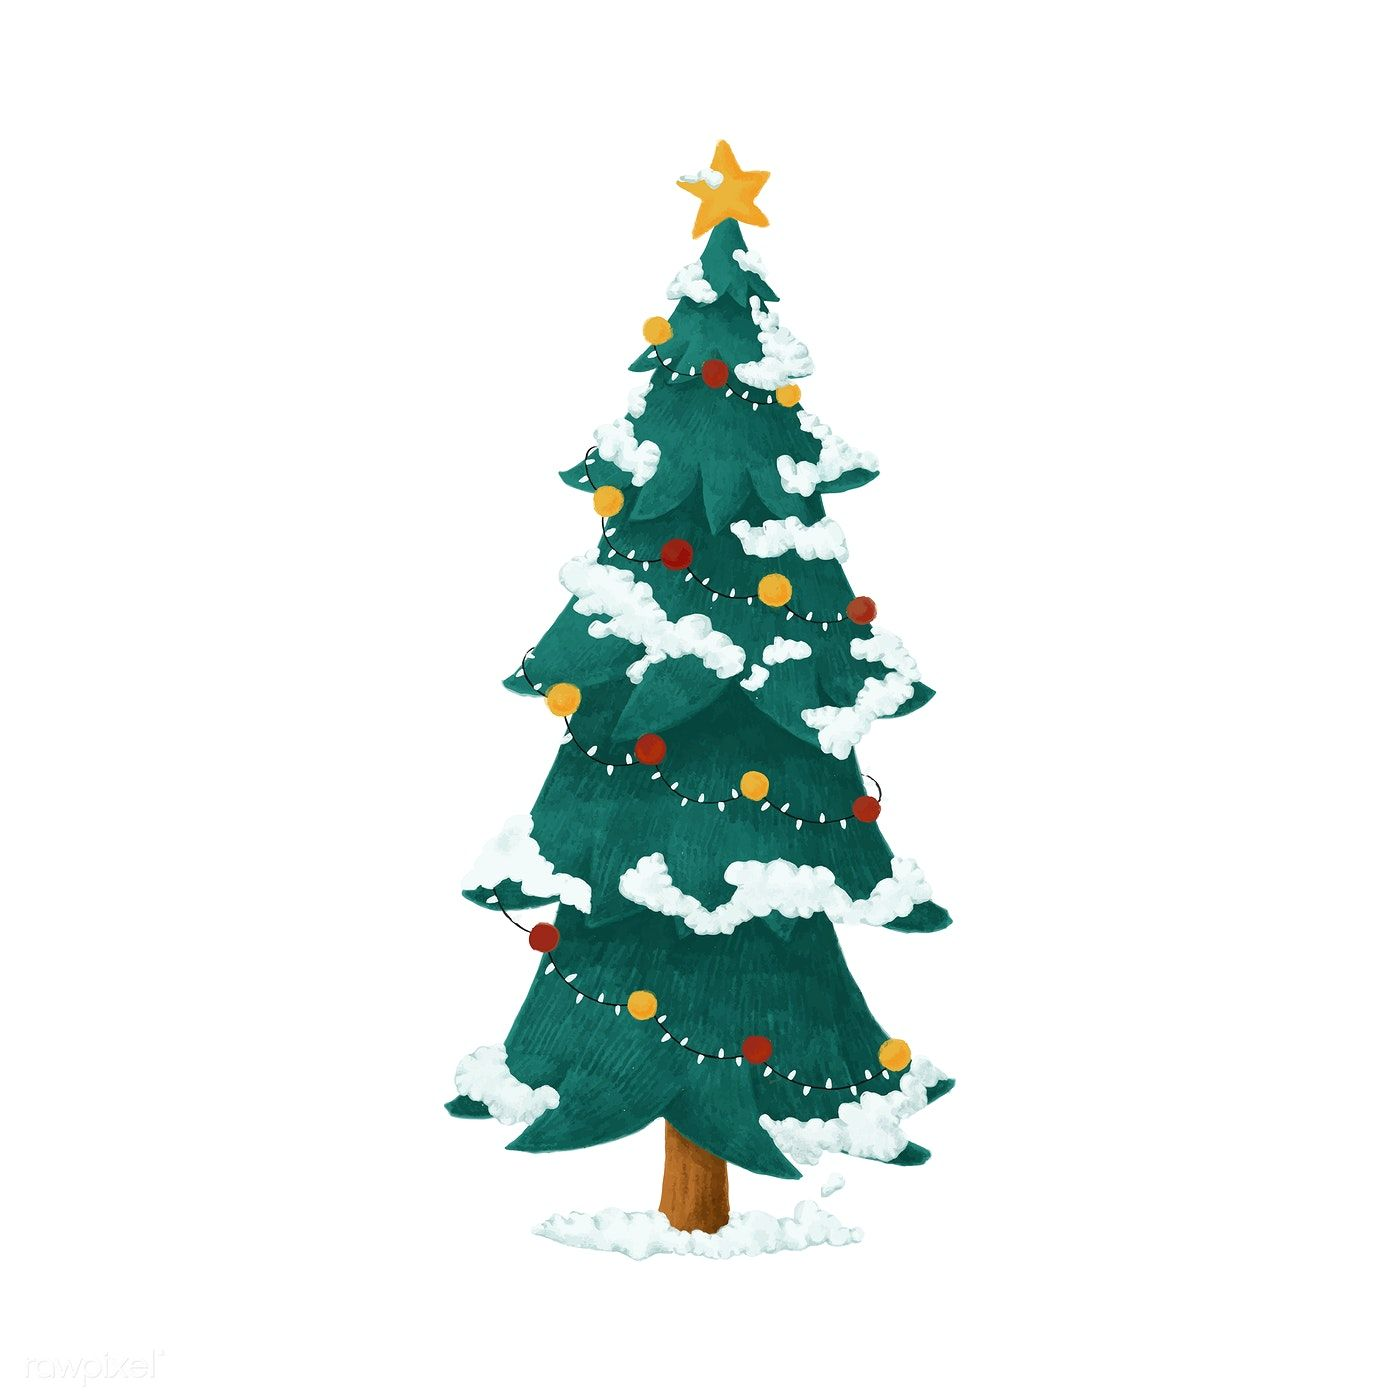 Christmas Tree Illustration.Hand Drawn Decorated Christmas Tree Illustration Free